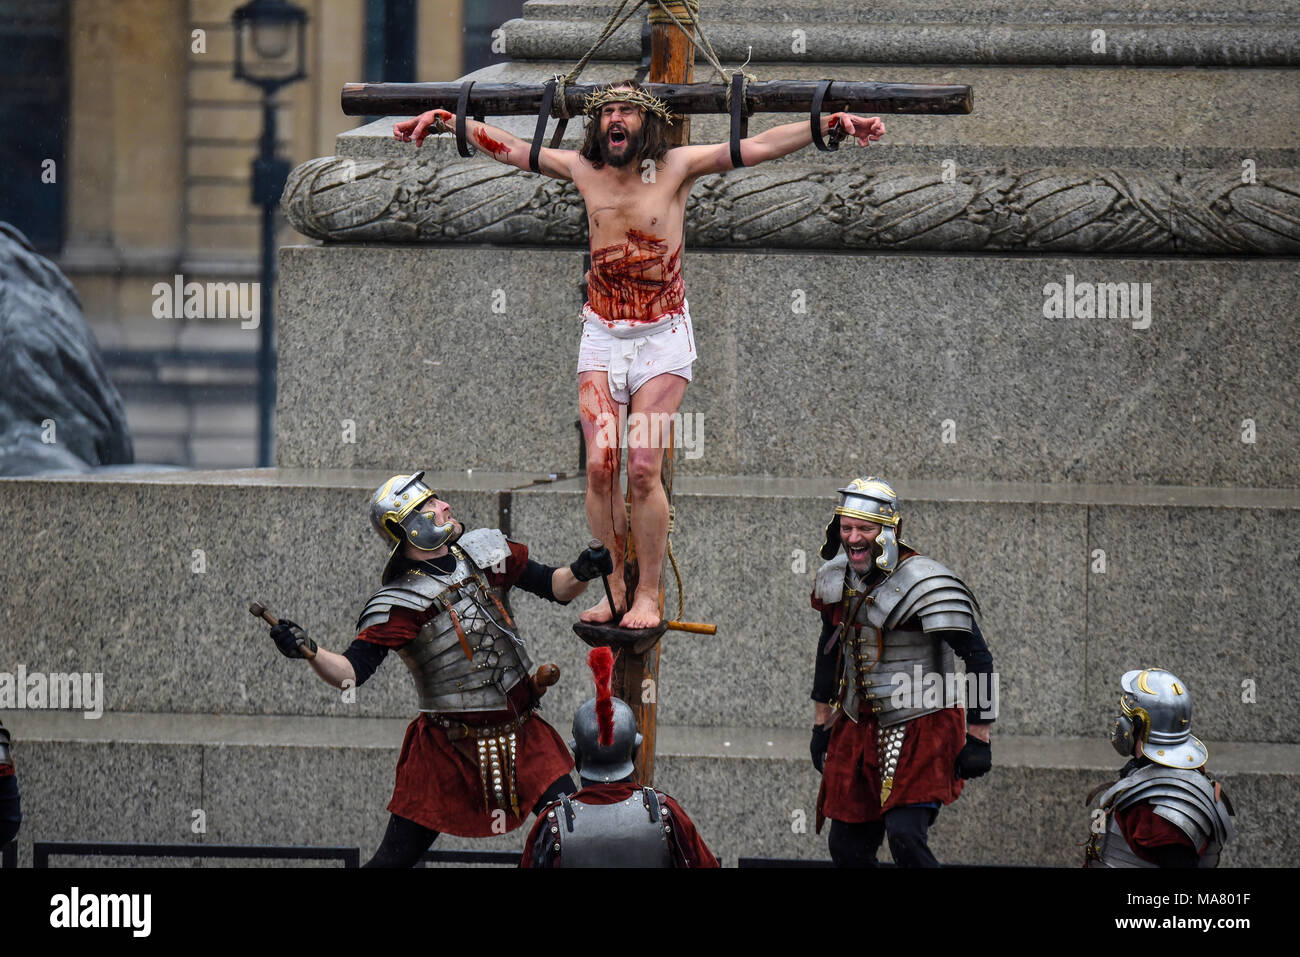 wintershall-cio-portrayed-passion-and-the-resurrection-of-jesus-christ-using-trafalgar-square-as-a-stage-christ-is-played-by-james-burke-dunsmore-MA801F.jpg